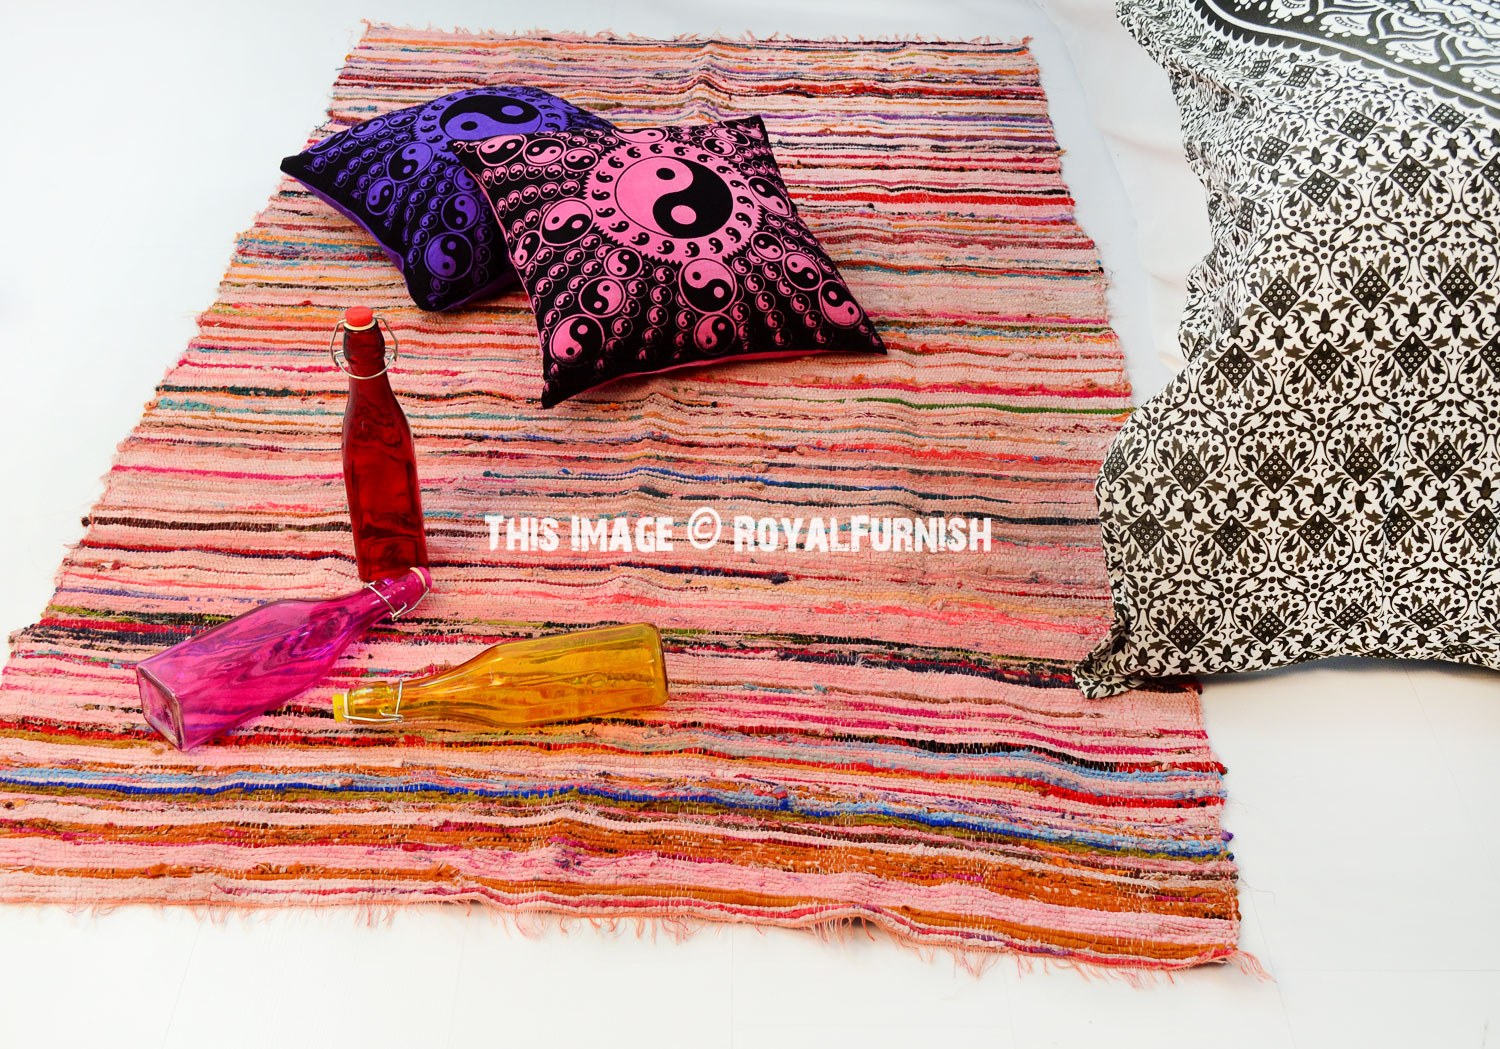 3 6 x 6 5 ft pink recycled fabric chindi rug floor mat. Black Bedroom Furniture Sets. Home Design Ideas